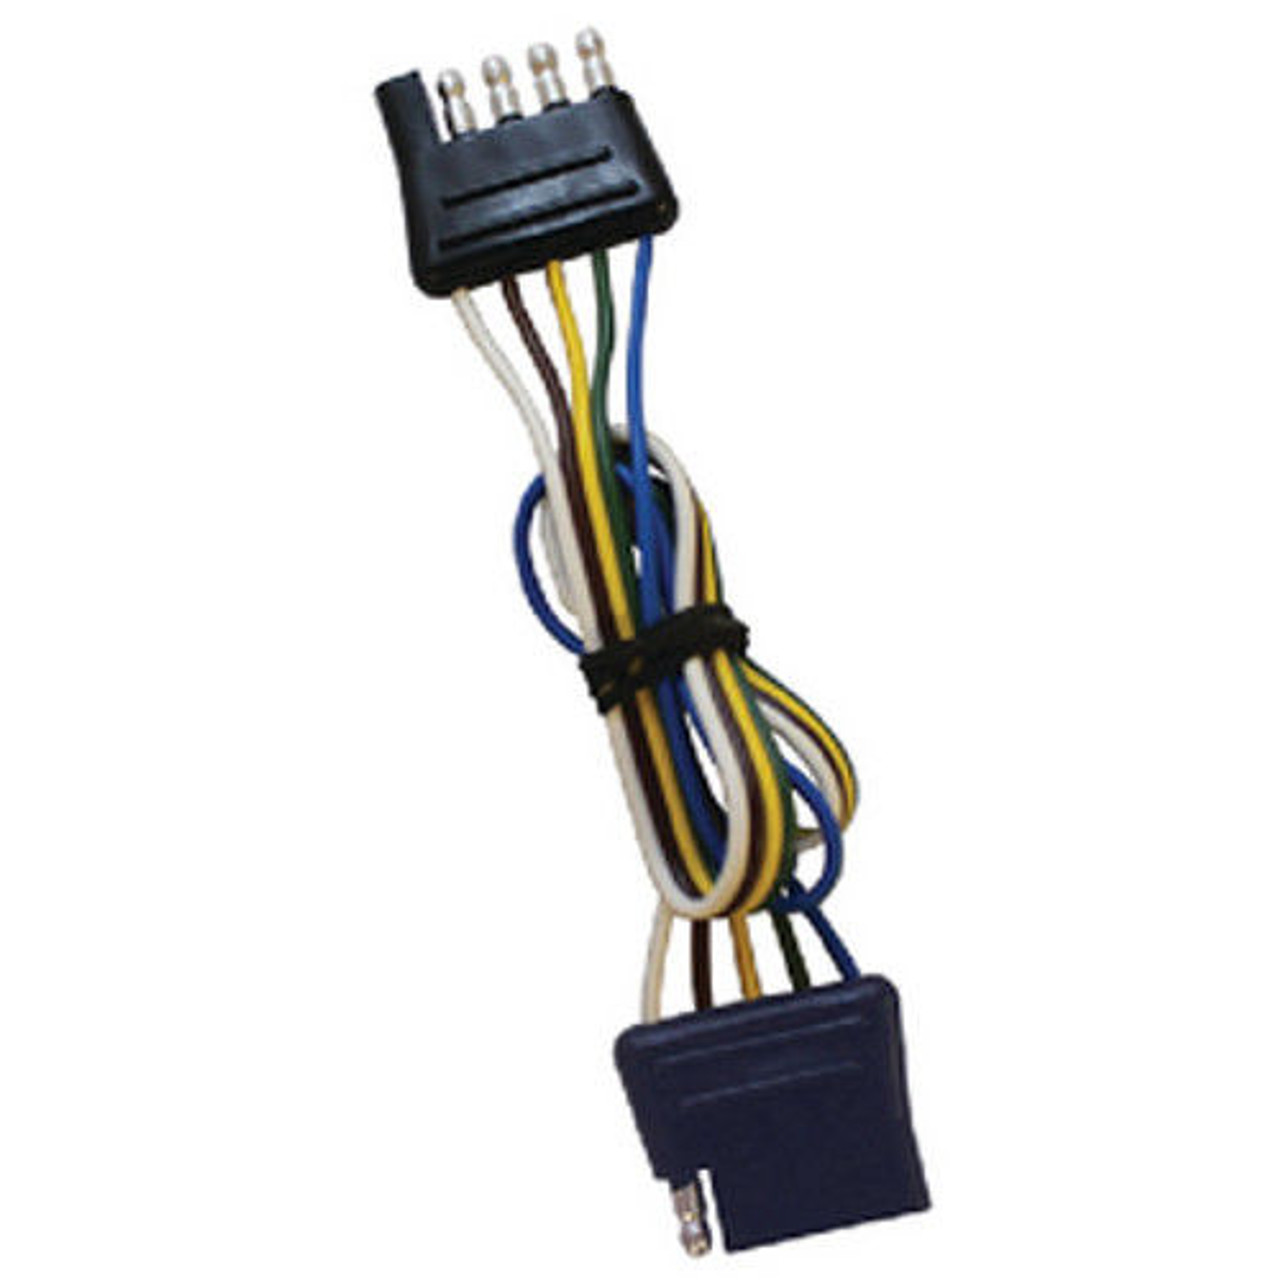 small resolution of 60 inch long flat 5 way boat trailer wiring harness extension flat extension wire 4 60